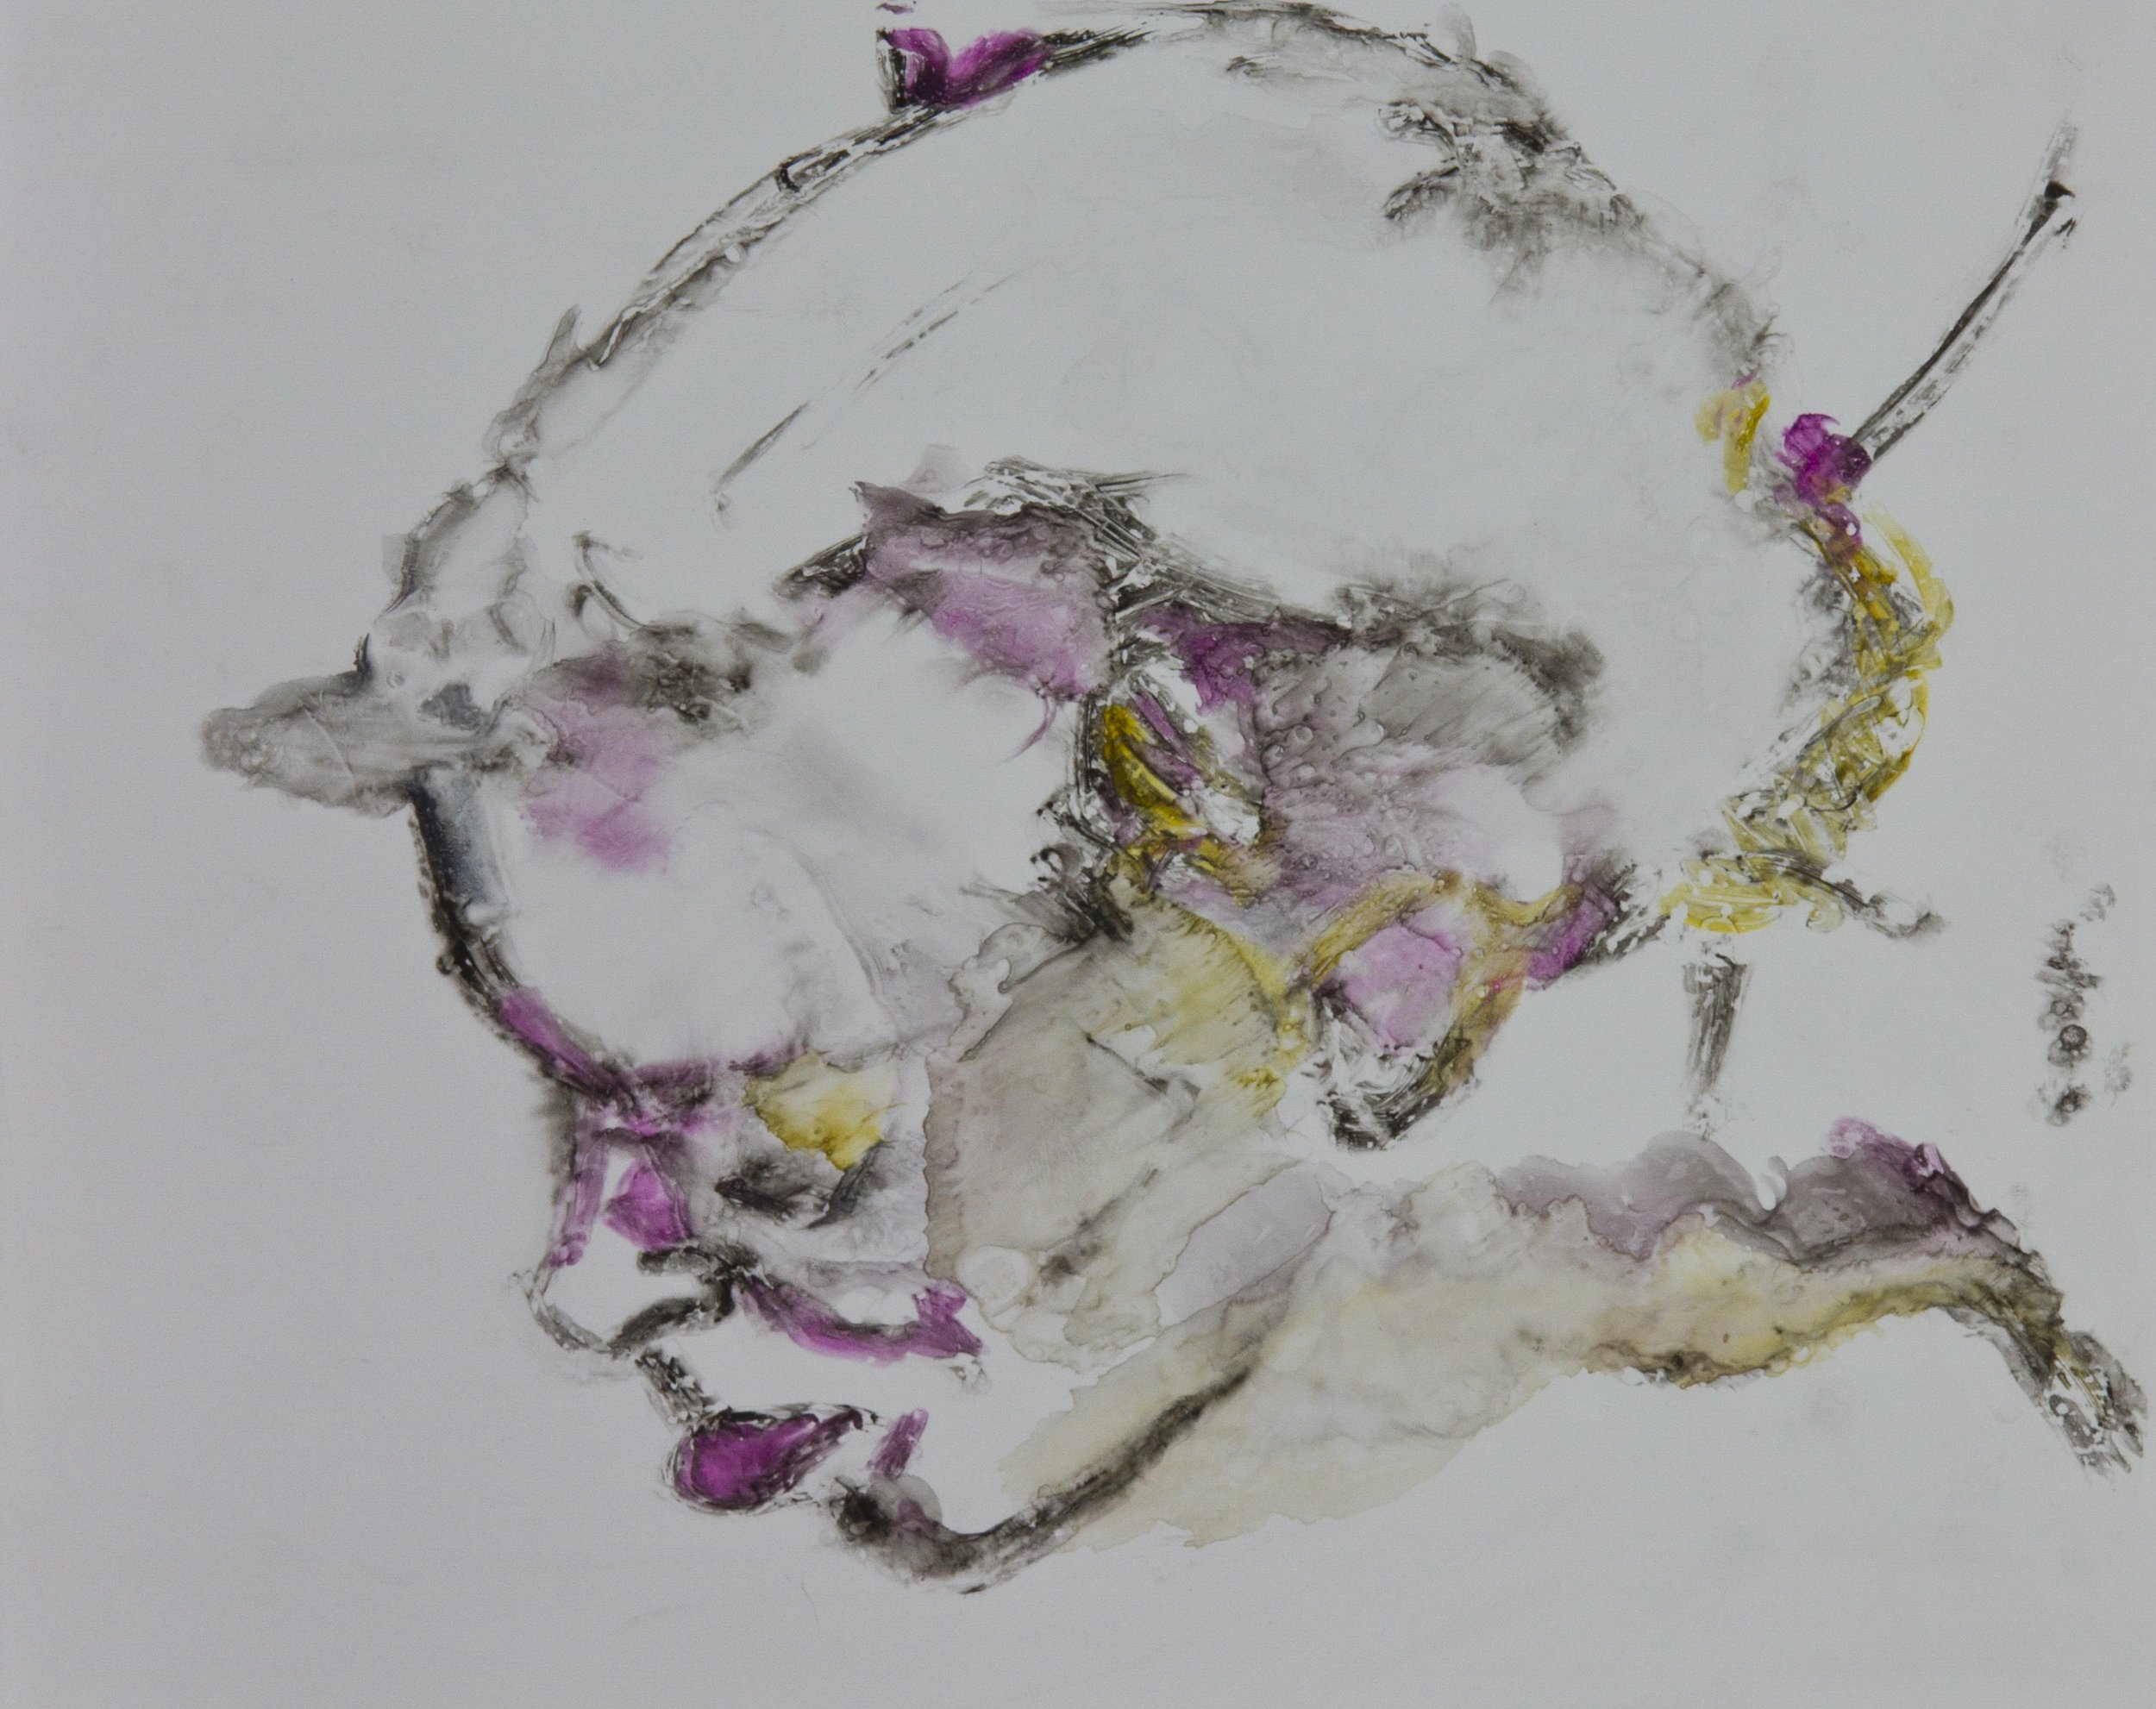 Acts 18, 2010, watercolor monotype on polypropylene, 11x14 inches